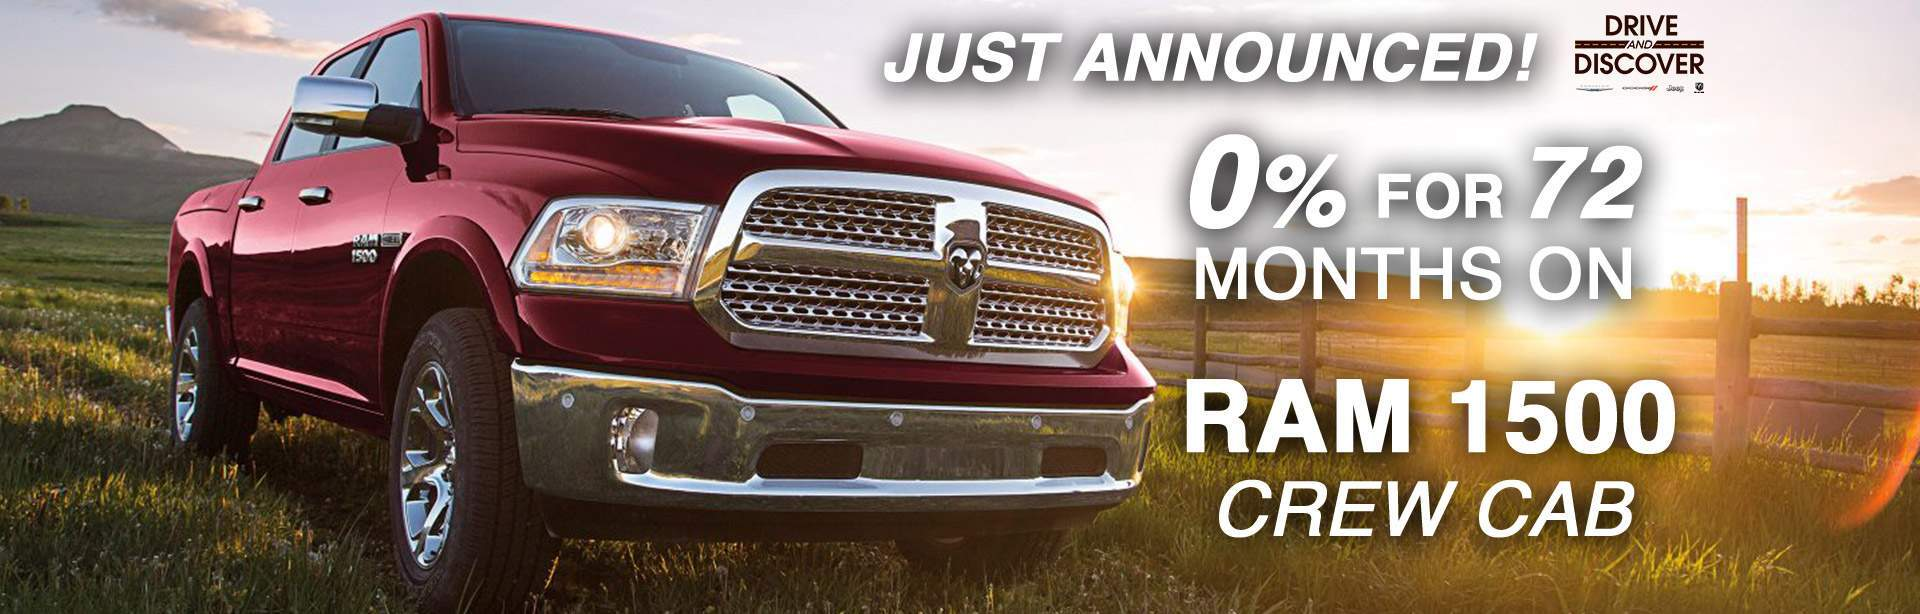 0% for 73 months on Ram 1500 Crew Cab